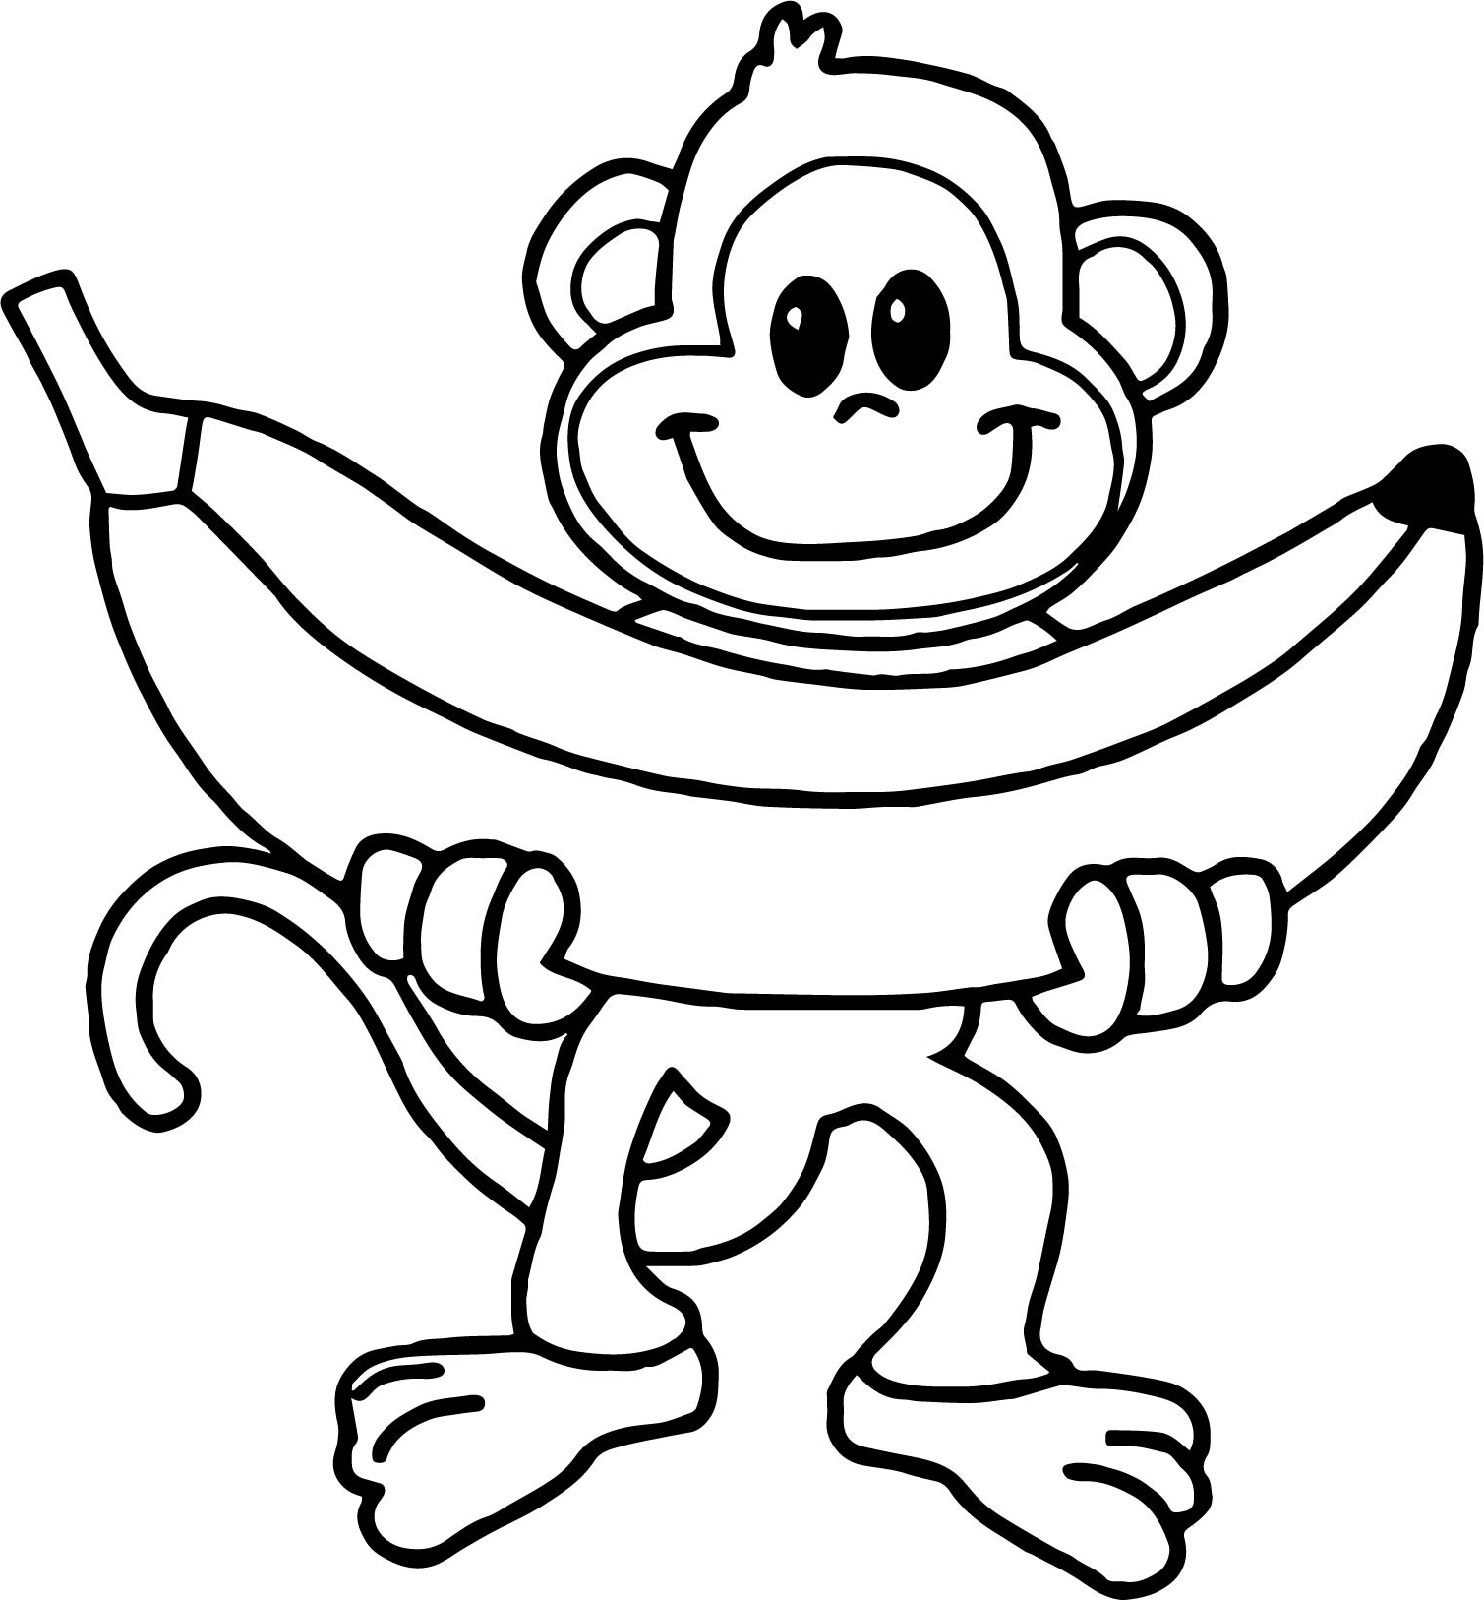 coloring picture of monkey monkey coloring pages free download on clipartmag picture monkey of coloring